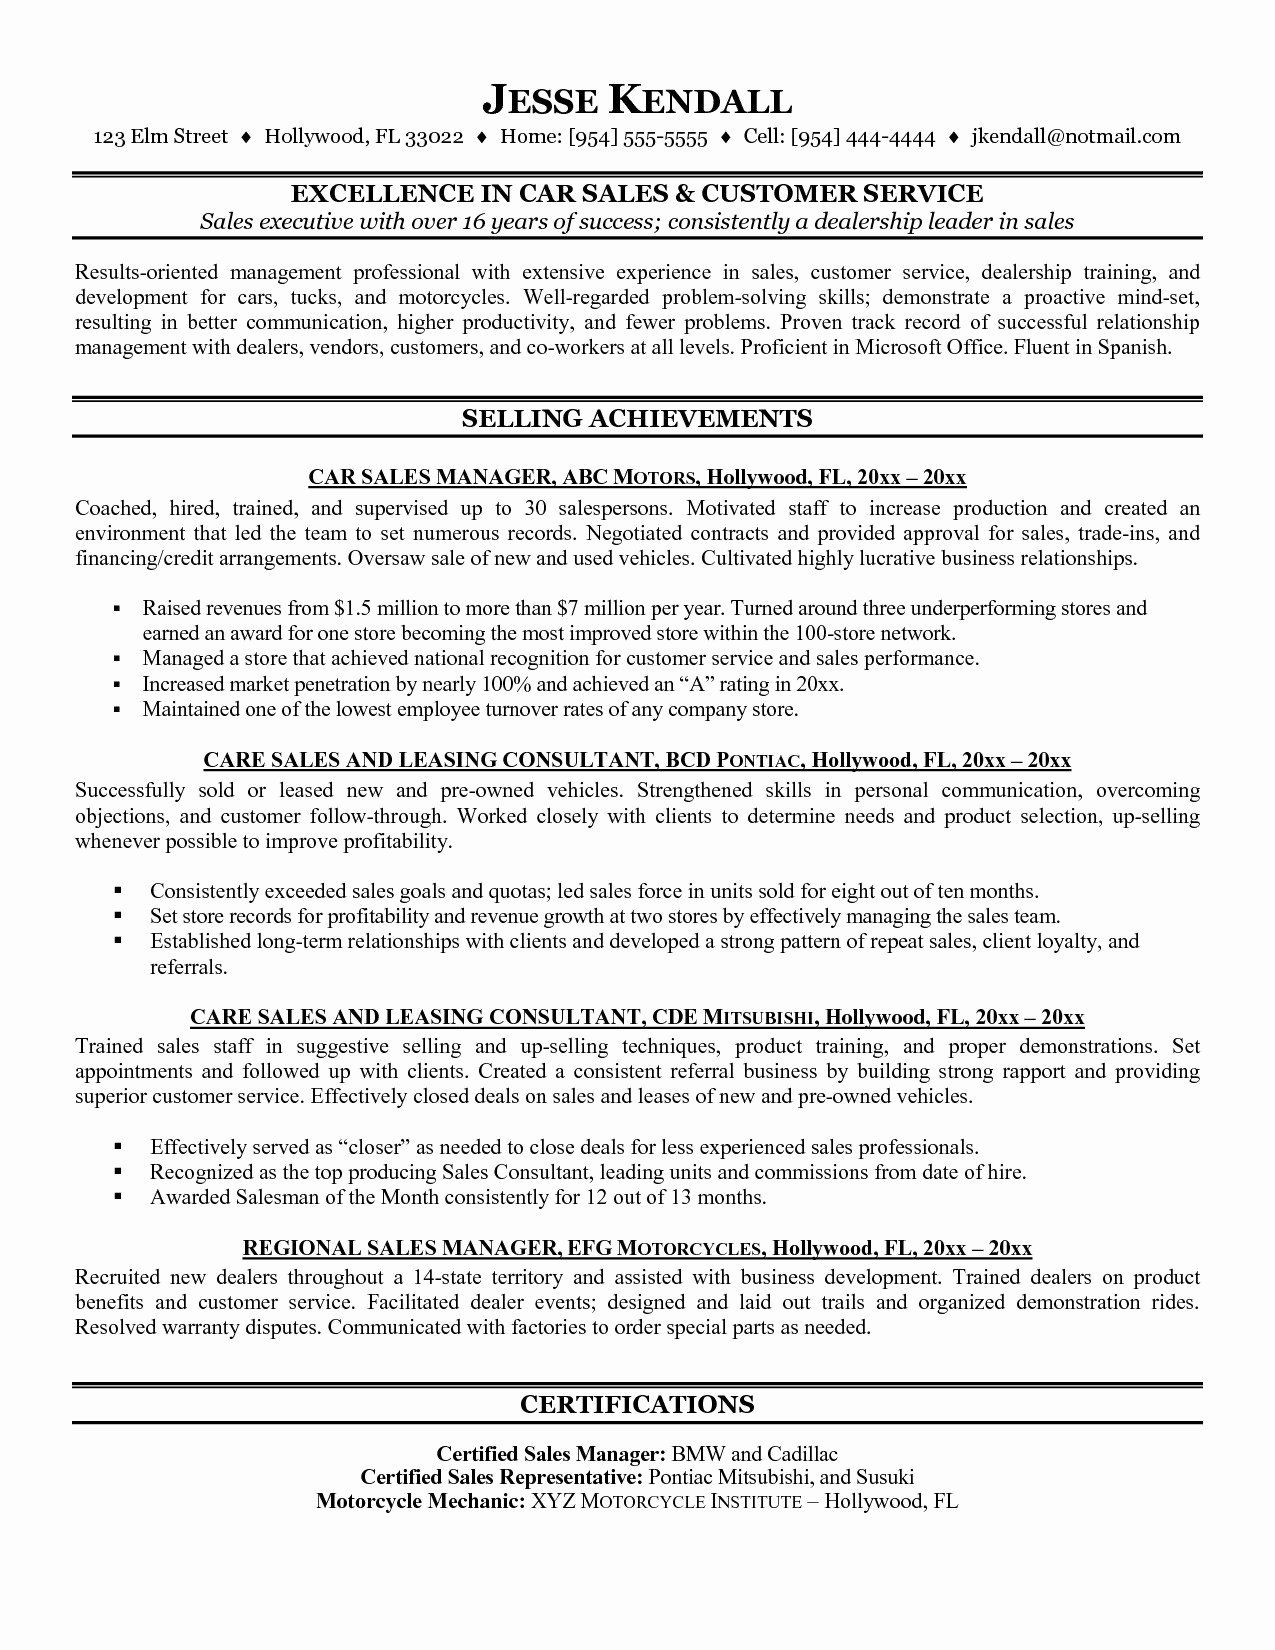 Automobile Sales Manager Resume New 9 10 Resume Objective Sentence Sales Resume Examples Sales Resume Resume Examples